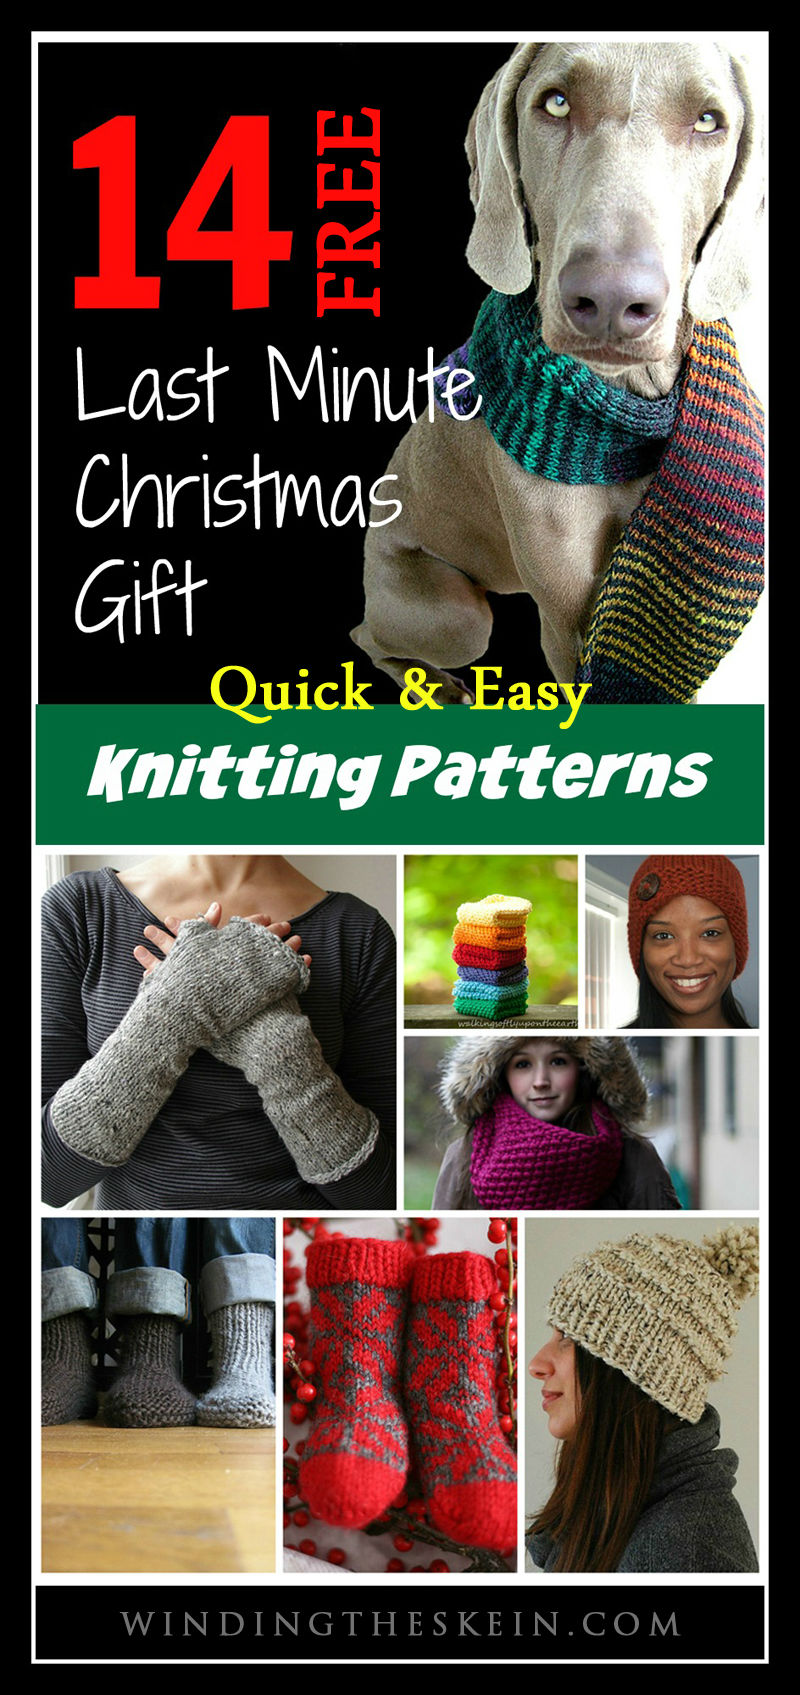 14 Quick, Easy & Free Last Minute Christmas Gift Knitting Patterns ...